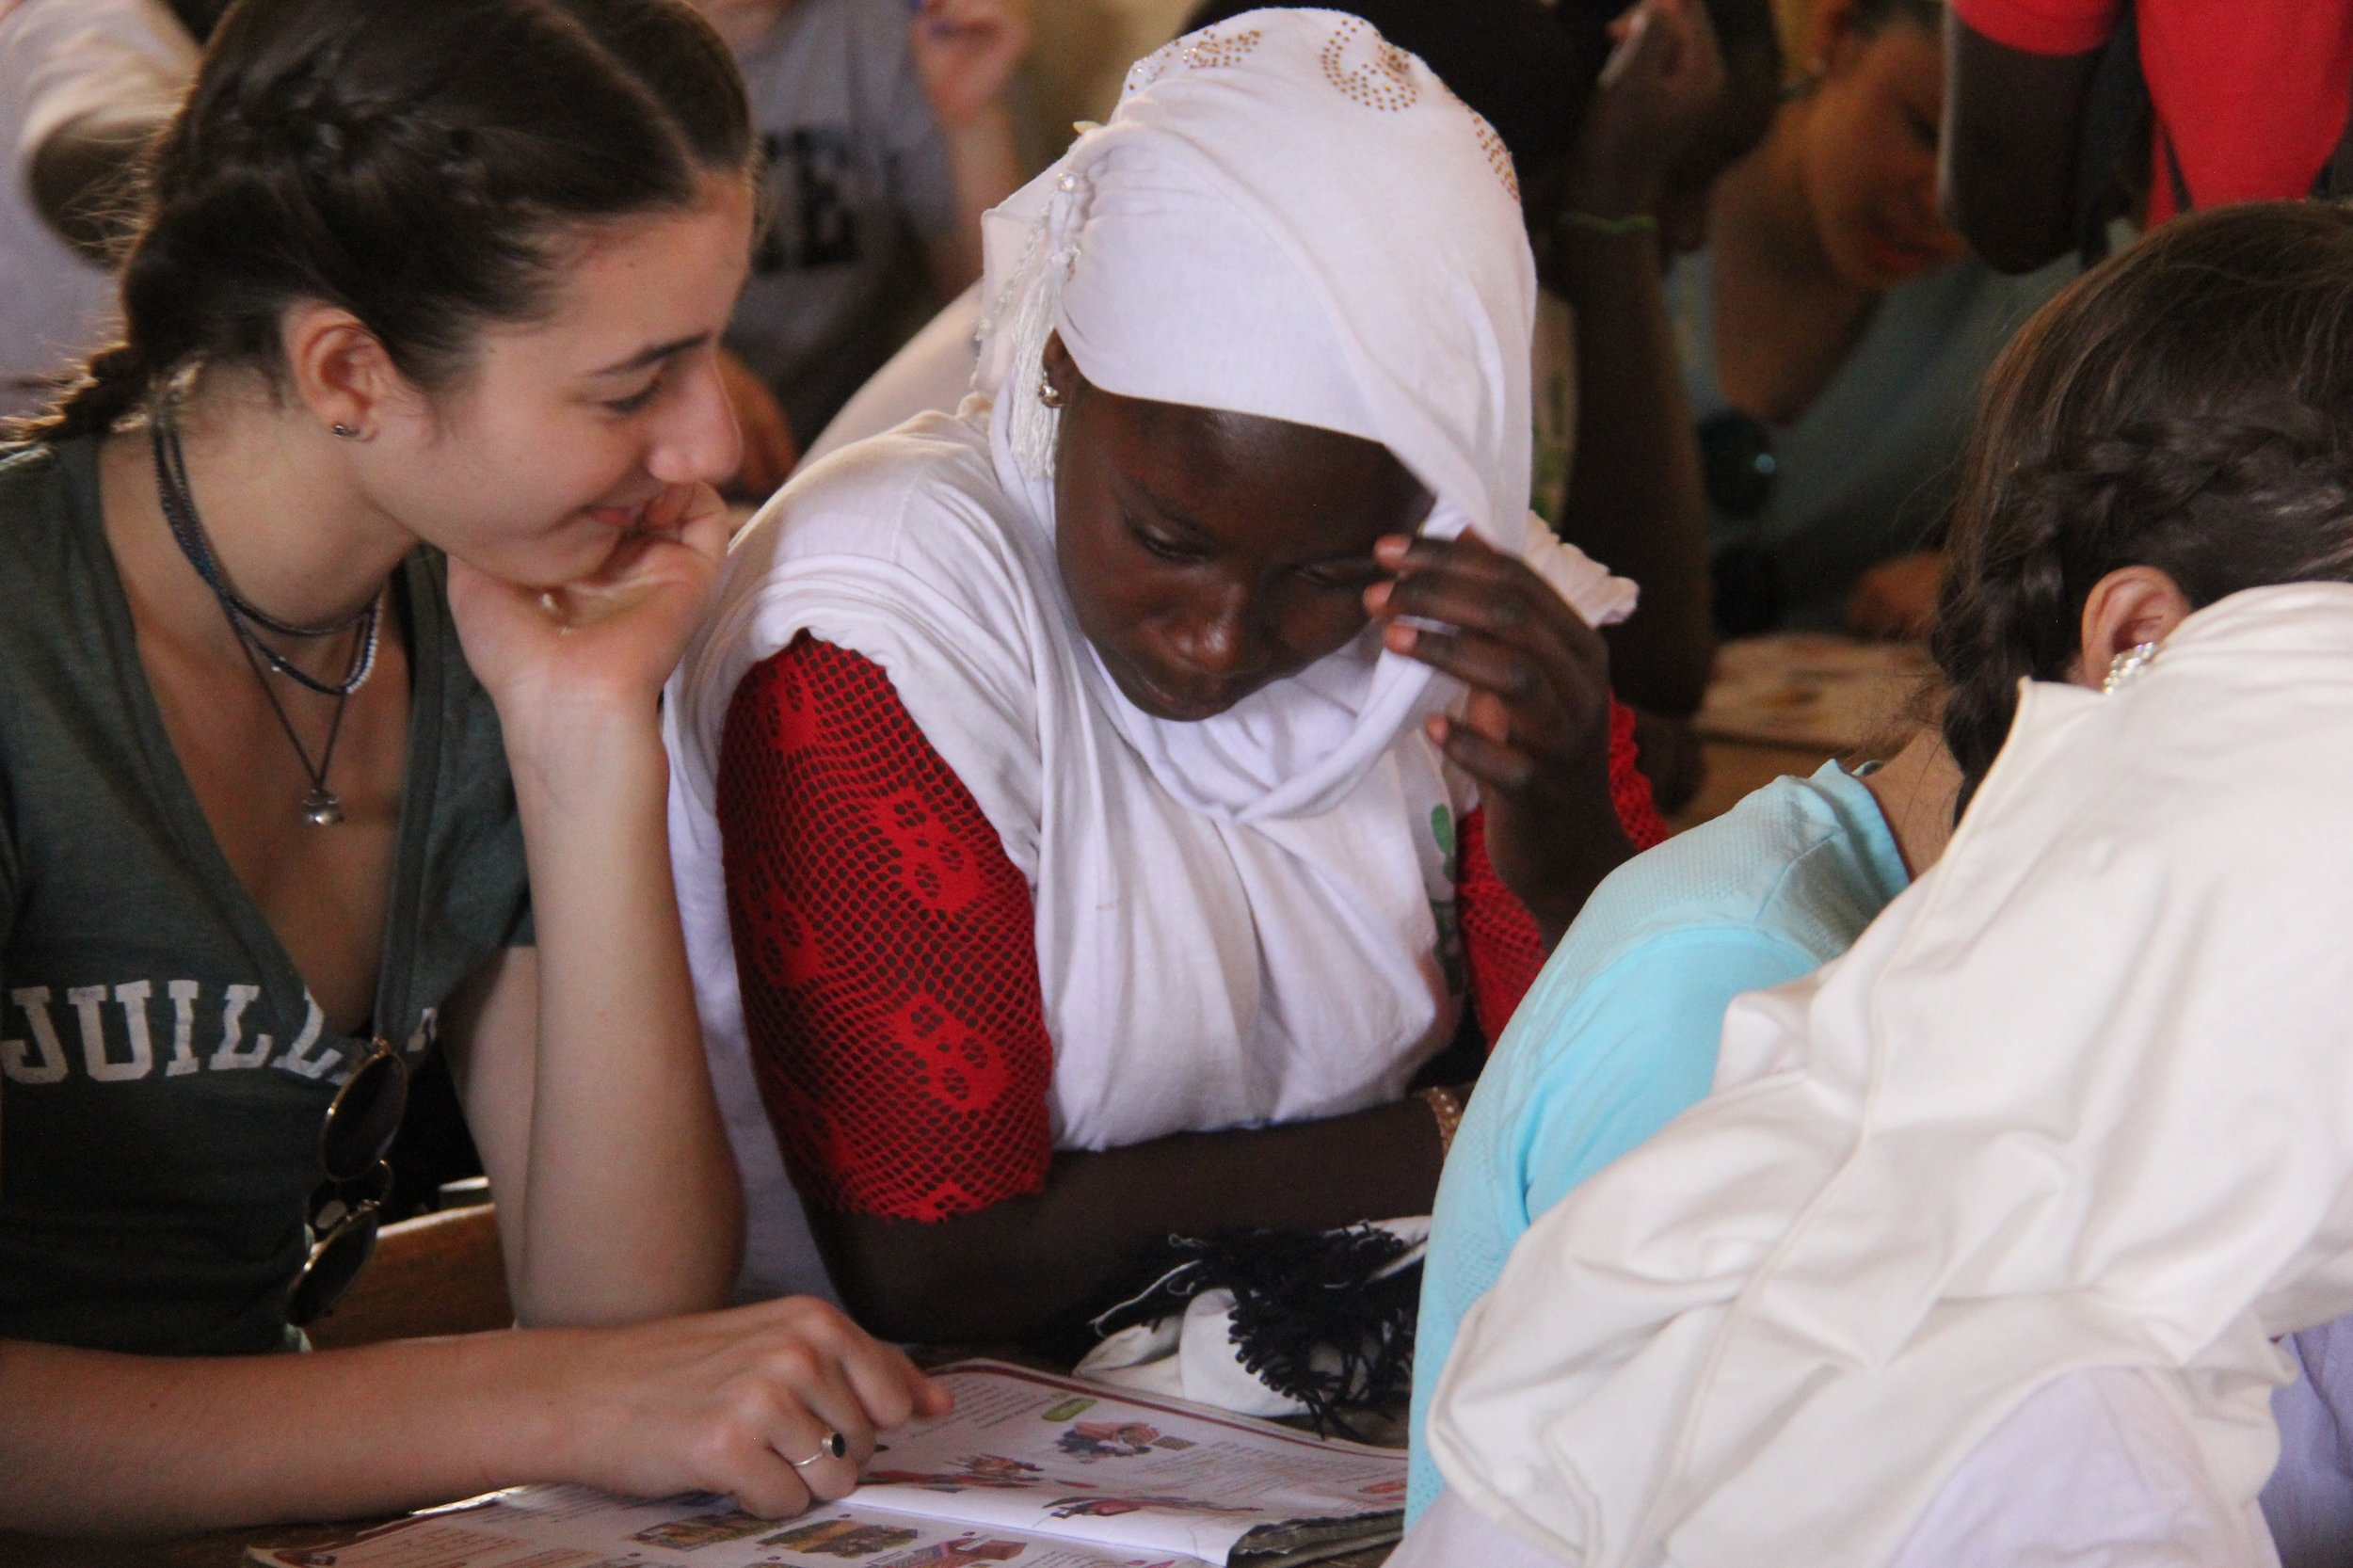 7 out of 8 Girls in Senegal won't go to high school - We fund girls education and built the Lambaye Learning Center so every woman and girl has an equal chance to get an education.